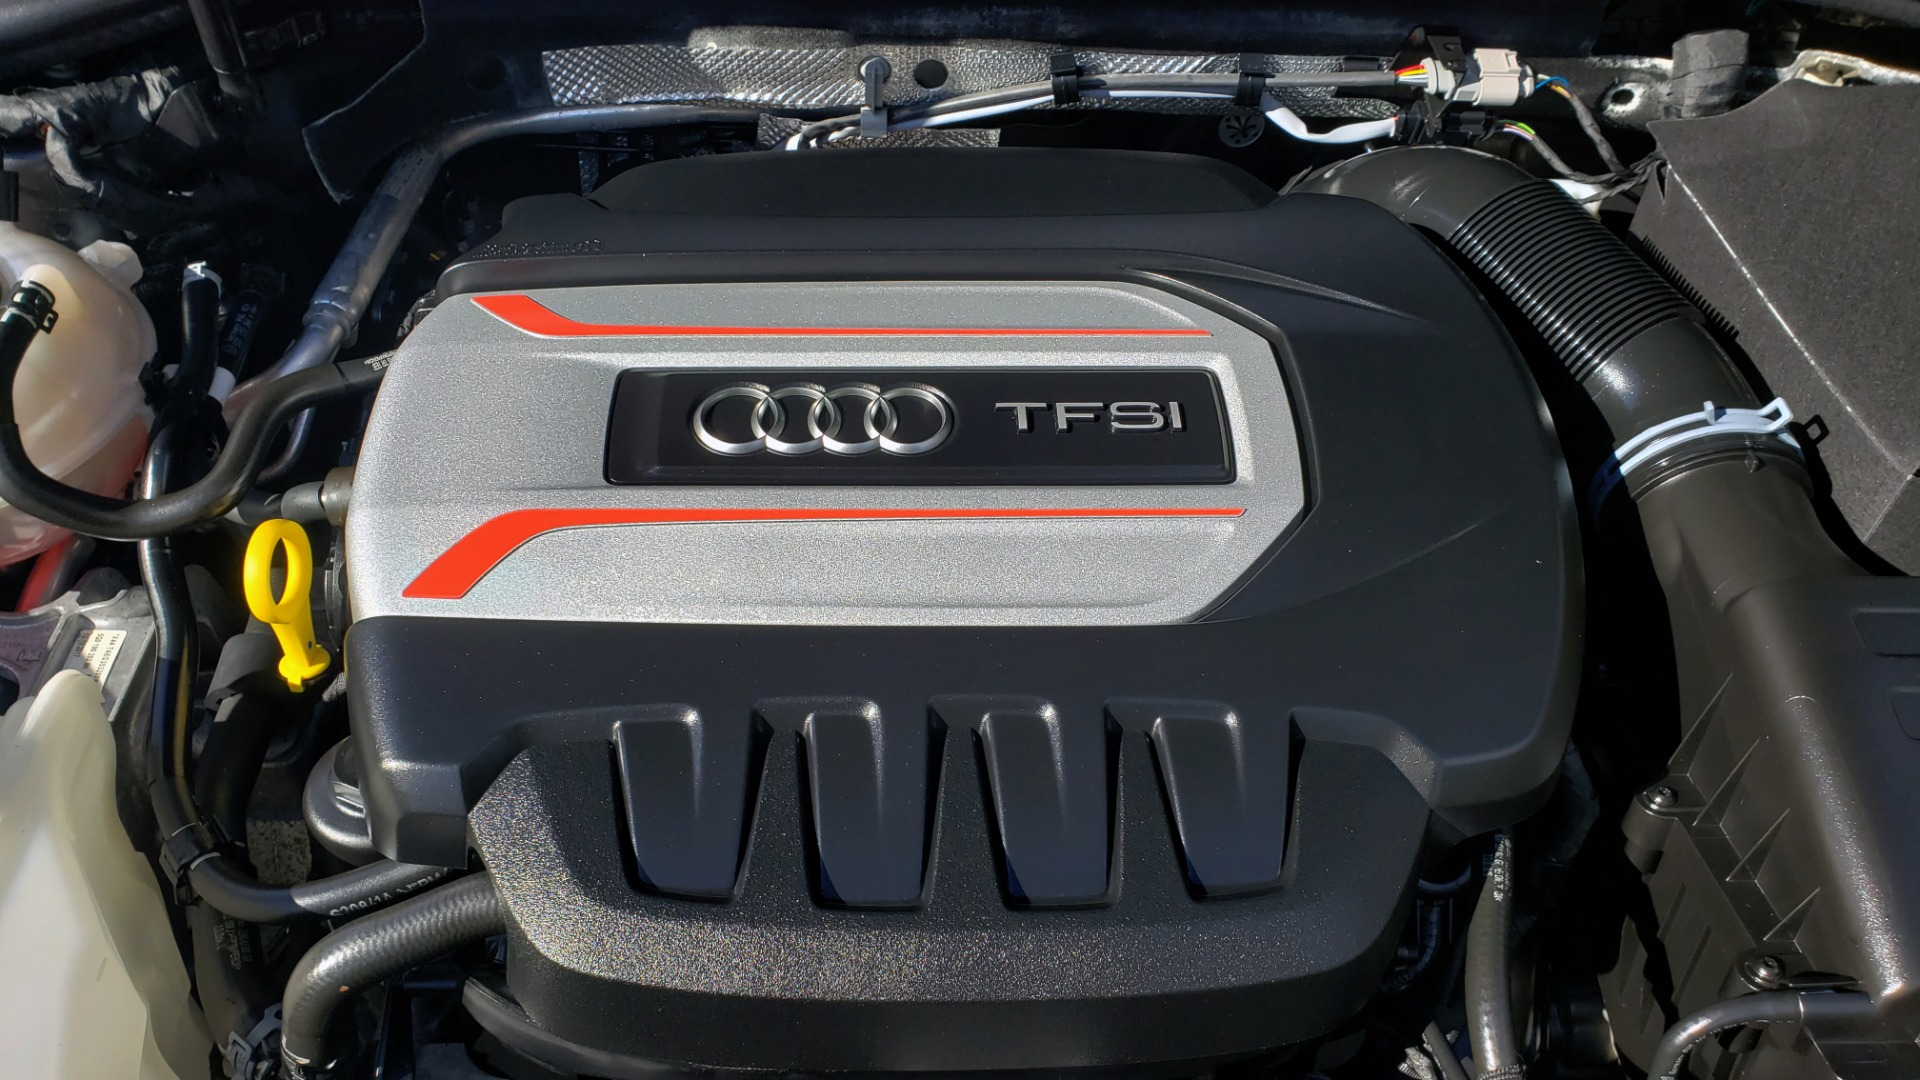 Used 2018 Audi S3 PREMIUM PLUS / TECH / NAV / BLACK OPTIC / S-SPORT / REARVIEW for sale $32,995 at Formula Imports in Charlotte NC 28227 11